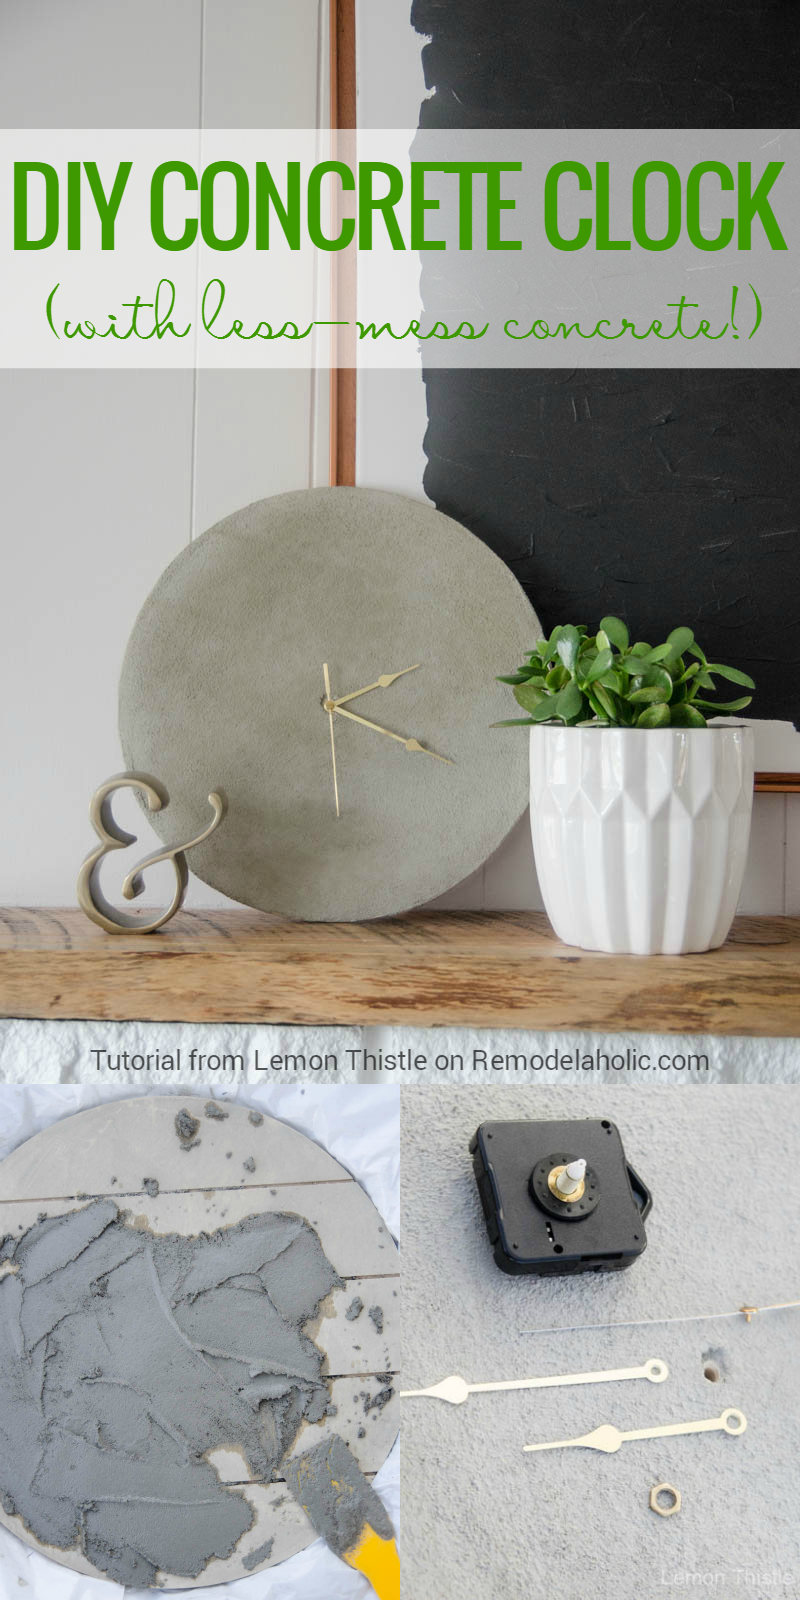 How To Make An Easy Diy Concrete Clock This Tutorial Shows You How To Get The Modern Industrial Concrete Look Without Having To Construct A Mol Diy Molding Diy Clock Concrete